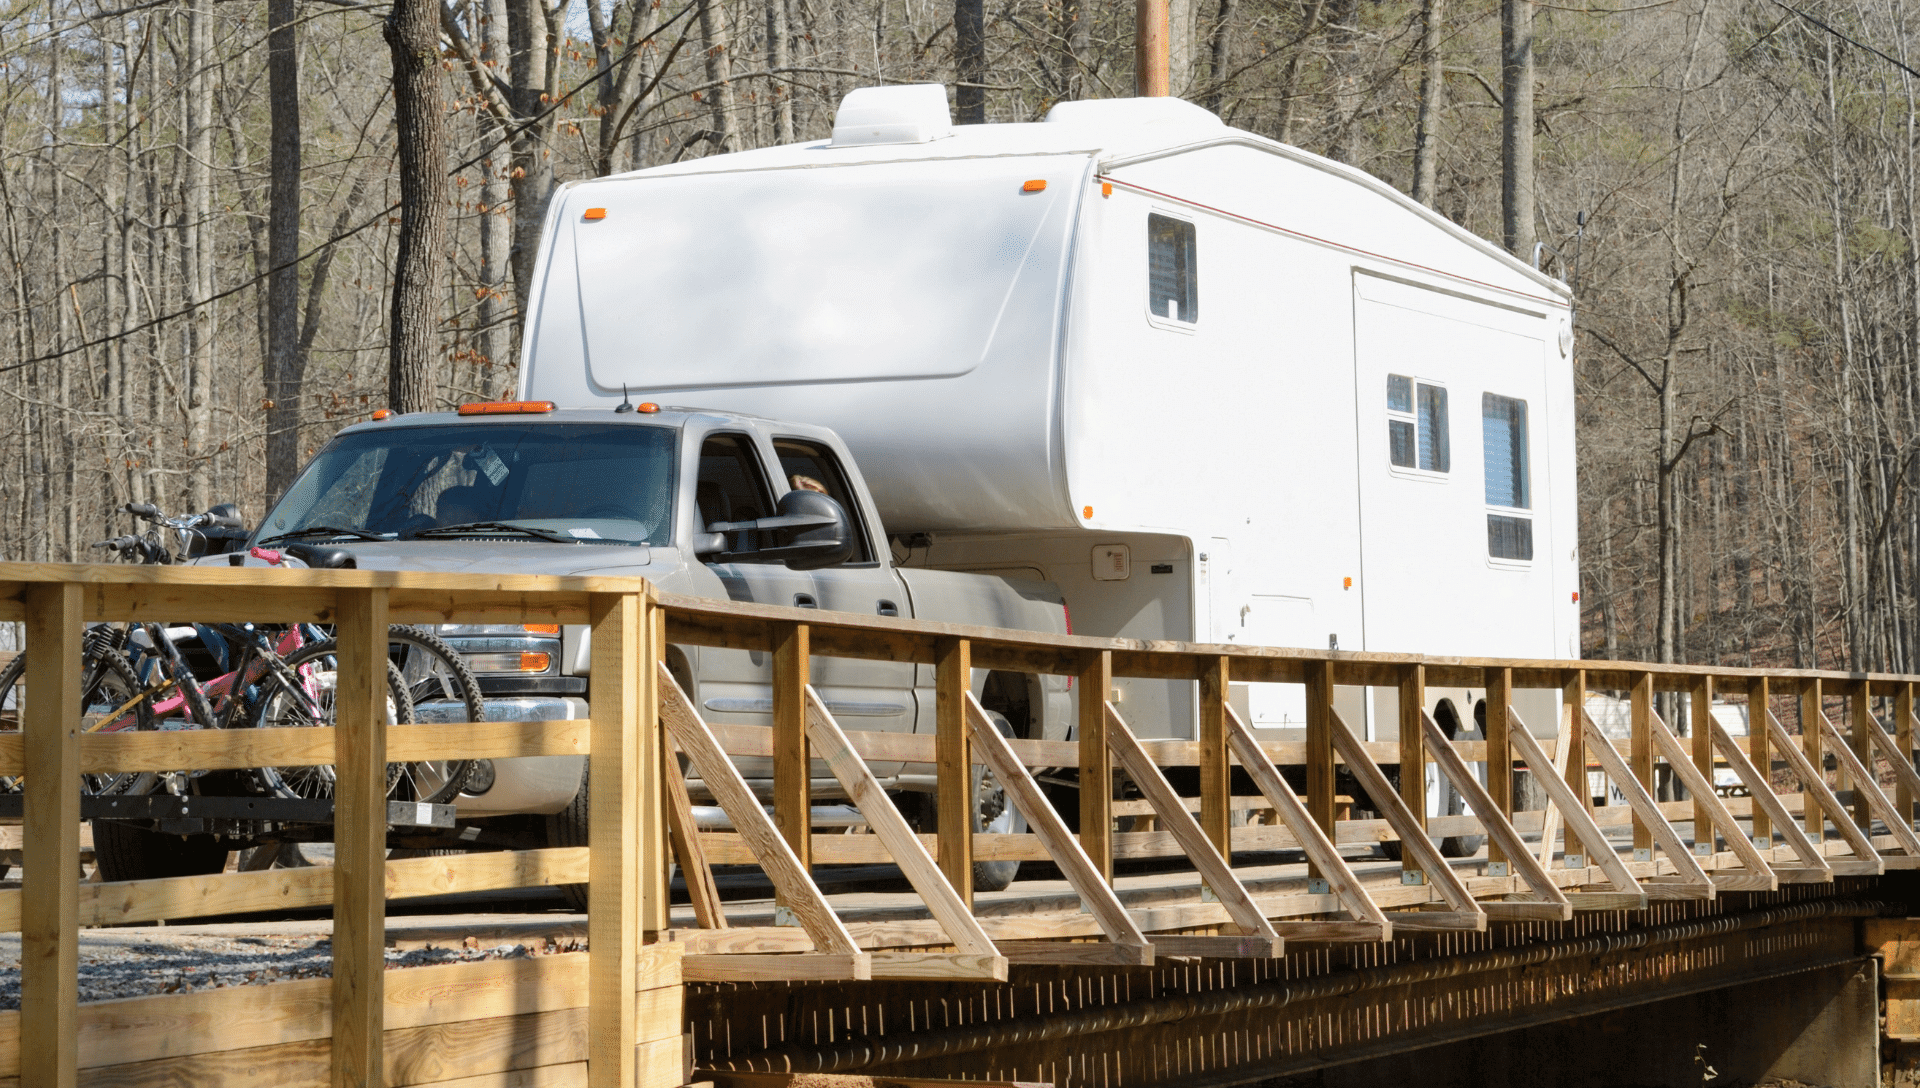 A fifth wheel RV is being towed by a pickup truck across a wooden rail bridge.